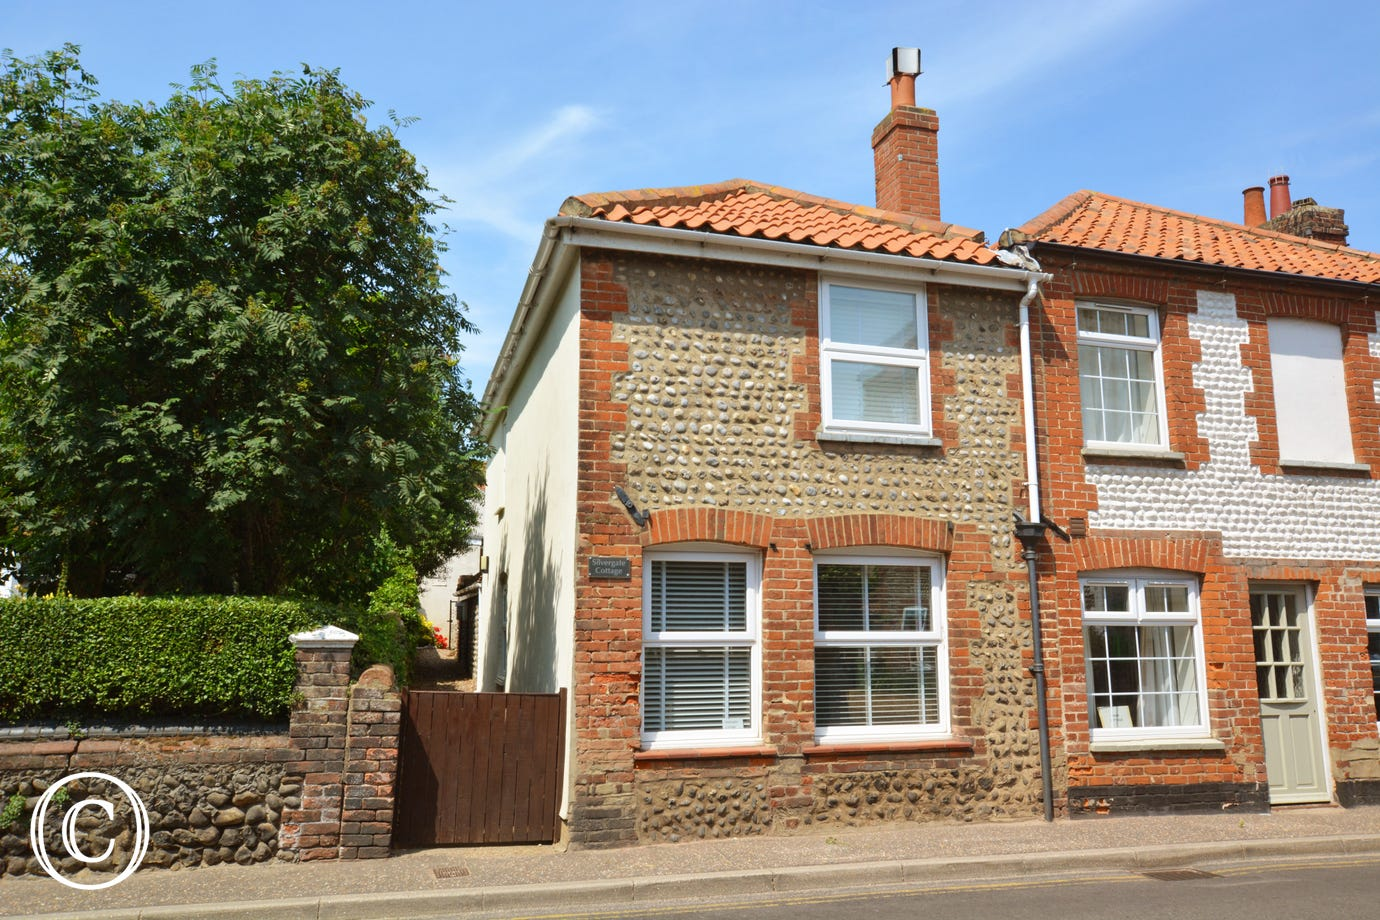 Exterior image of this charming brick and flint cottage